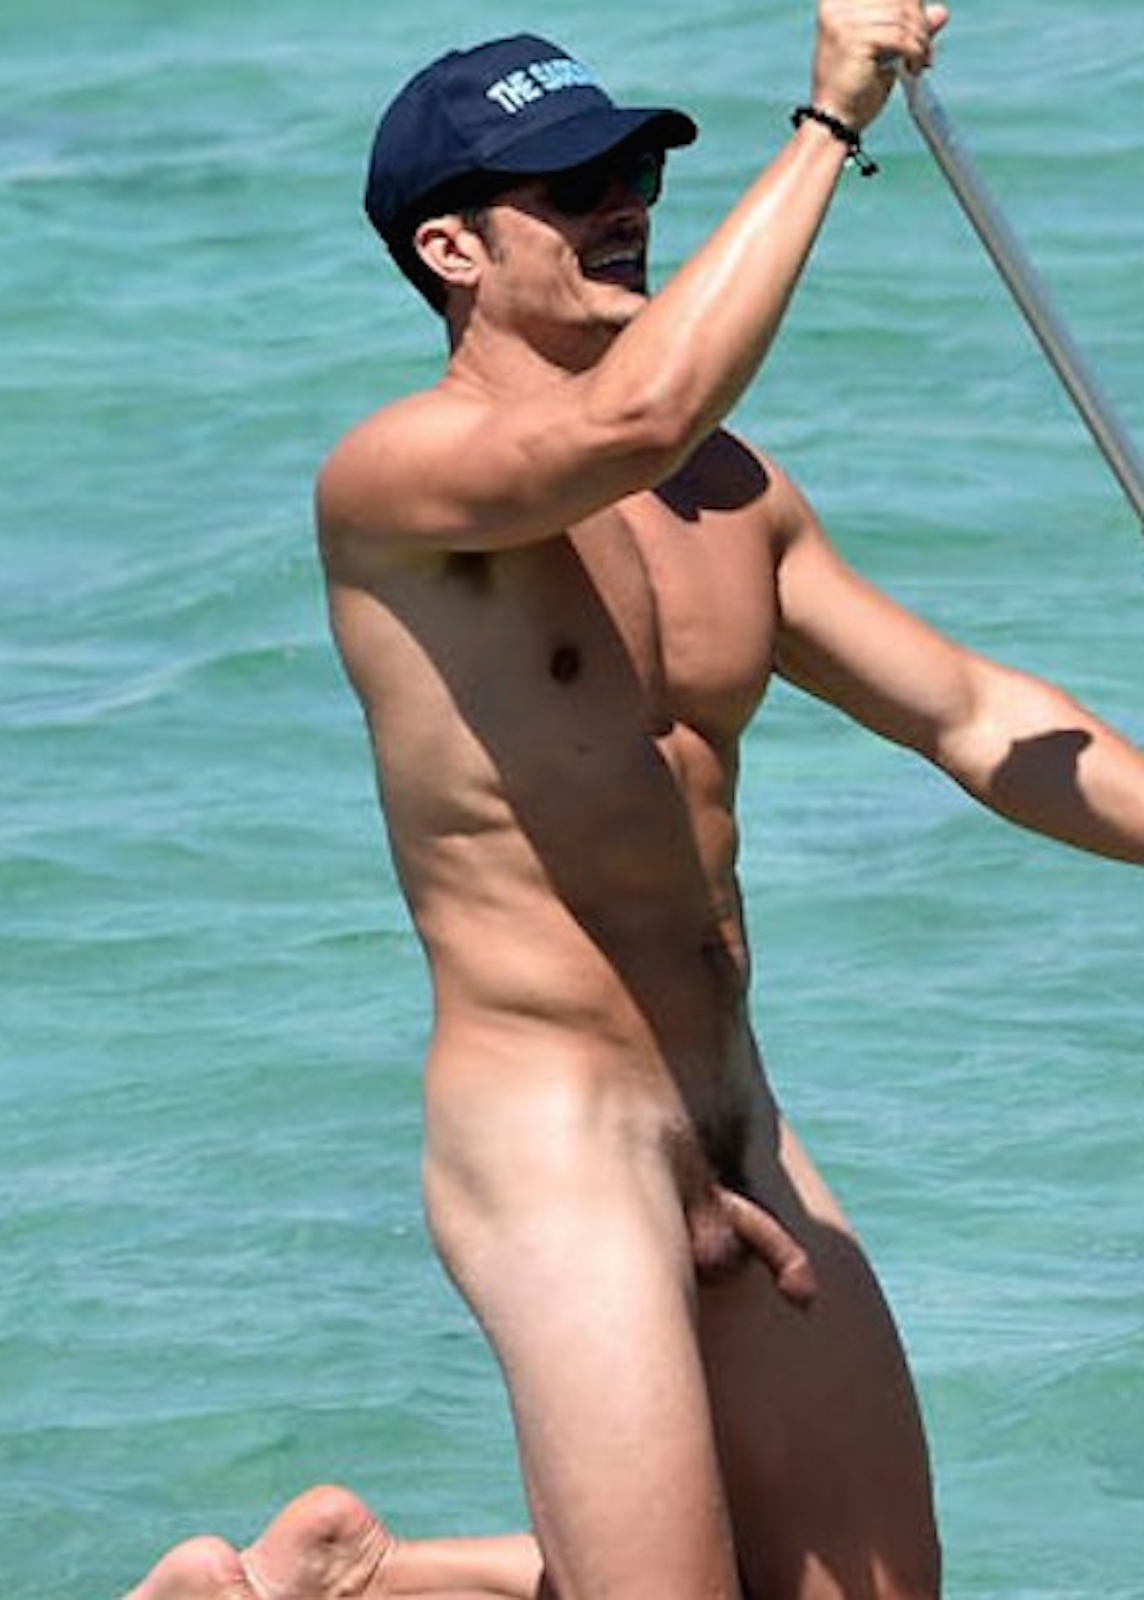 Orlando Bloom Nude Beach Uncensored